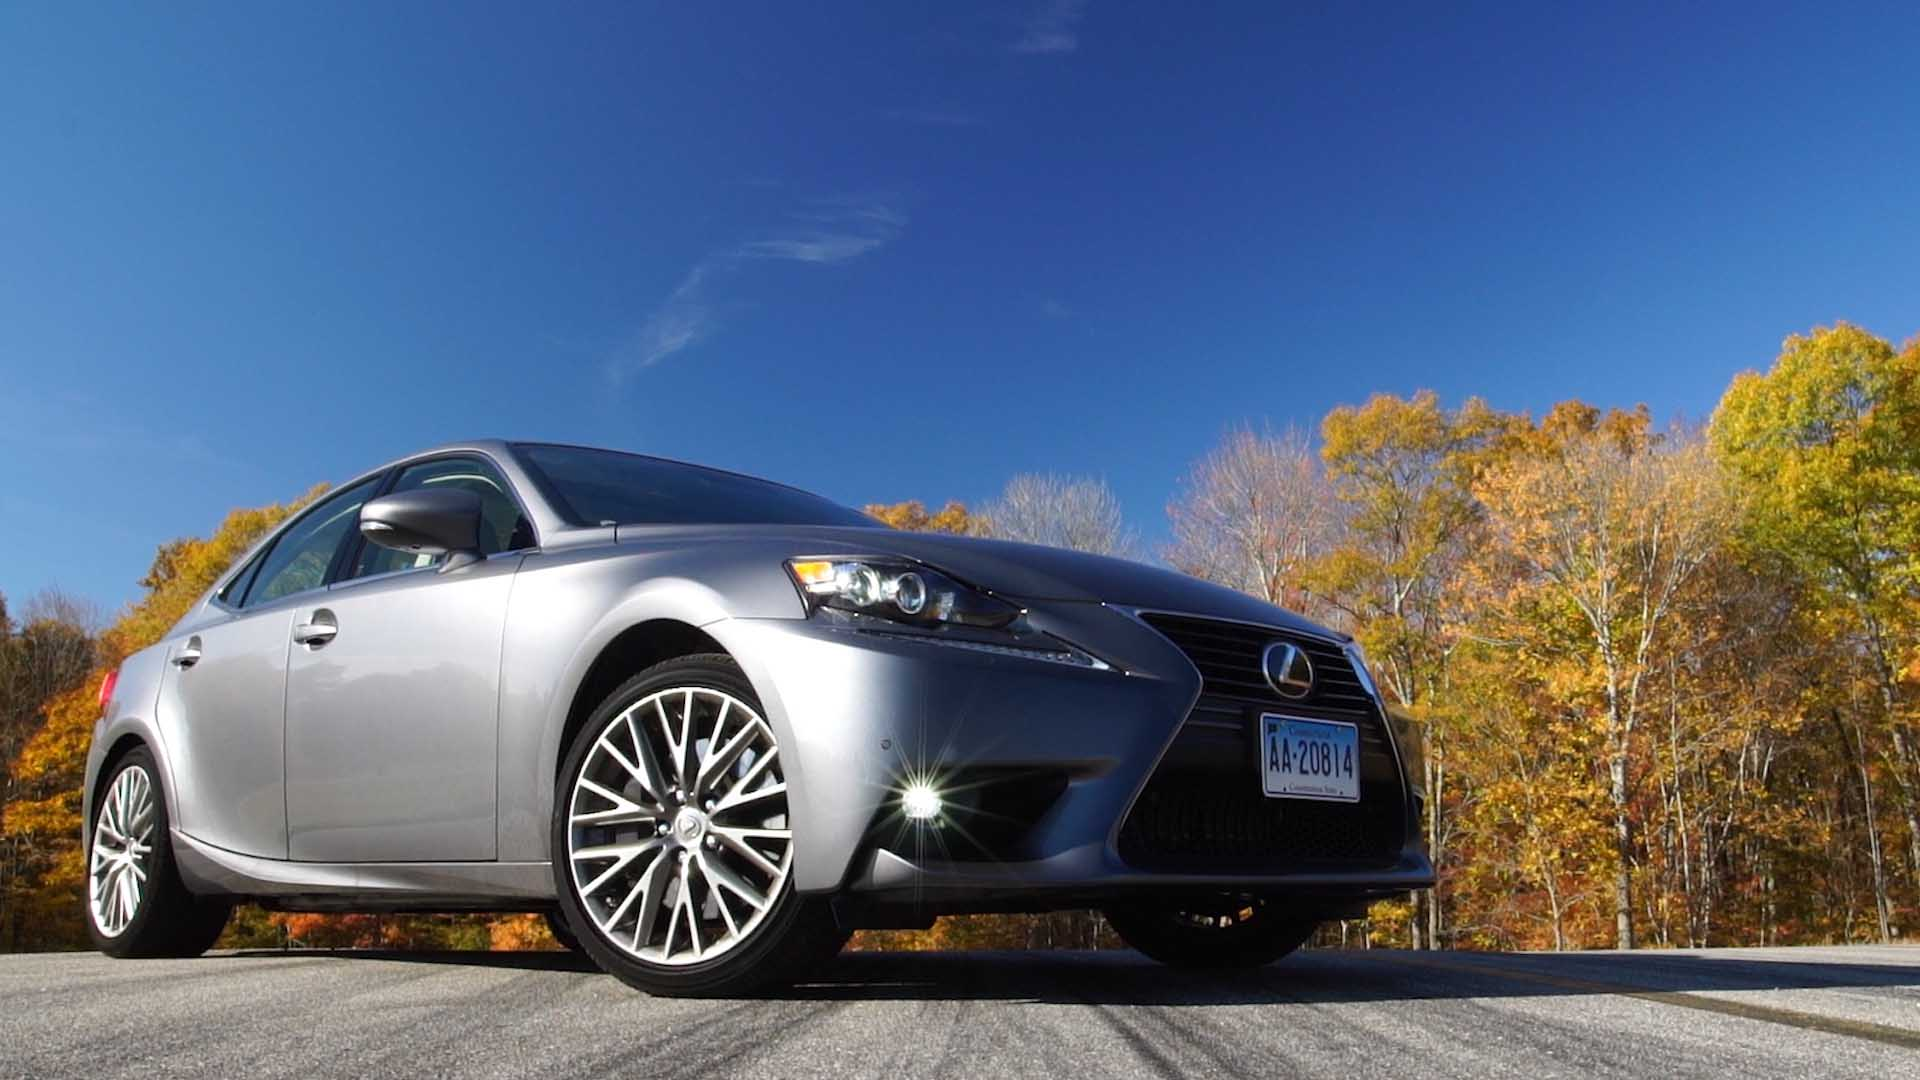 2017 Lexus IS Reviews Ratings Prices Consumer Reports